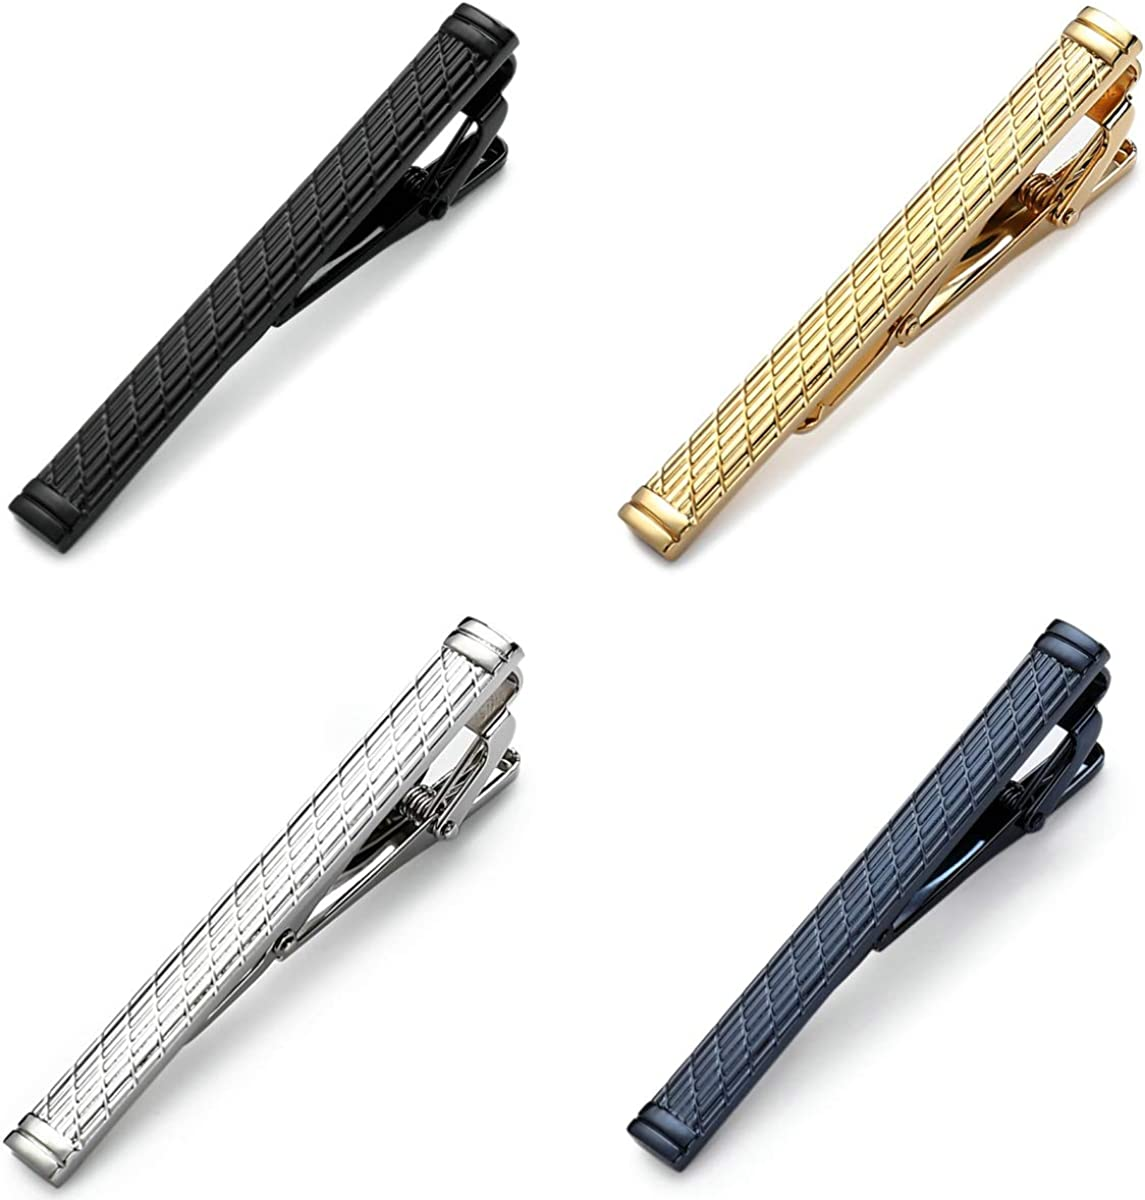 MOZETO Tie Clips for Men, 4pcs Fashion Shining Style Tie Bar for Regular Ties, Luxury Package, Gift for Men